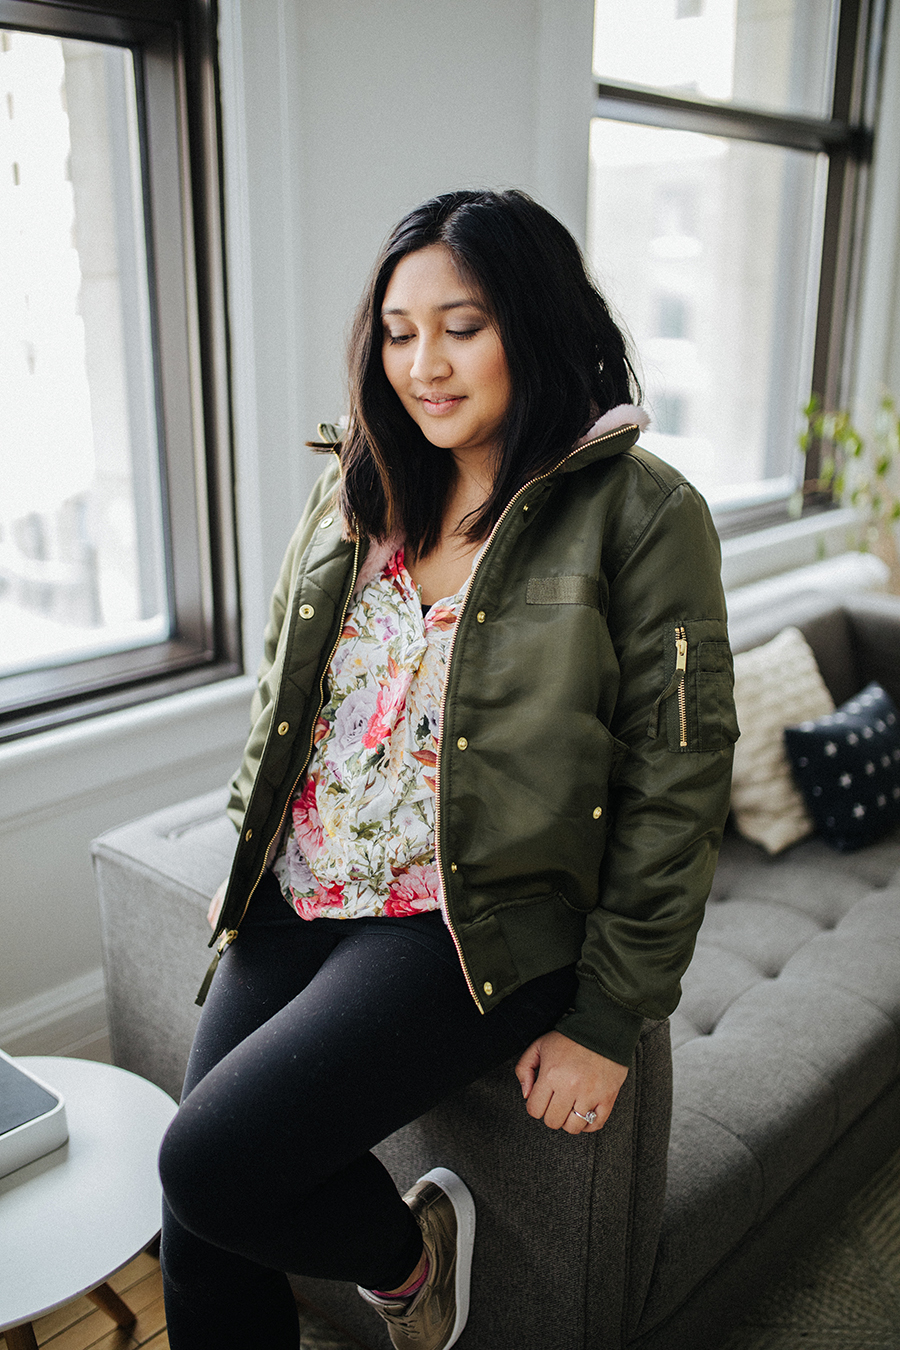 This green jacket caught my attention because of all its detailing: gold hardware, satin fabric, and a fluffy pink collar.